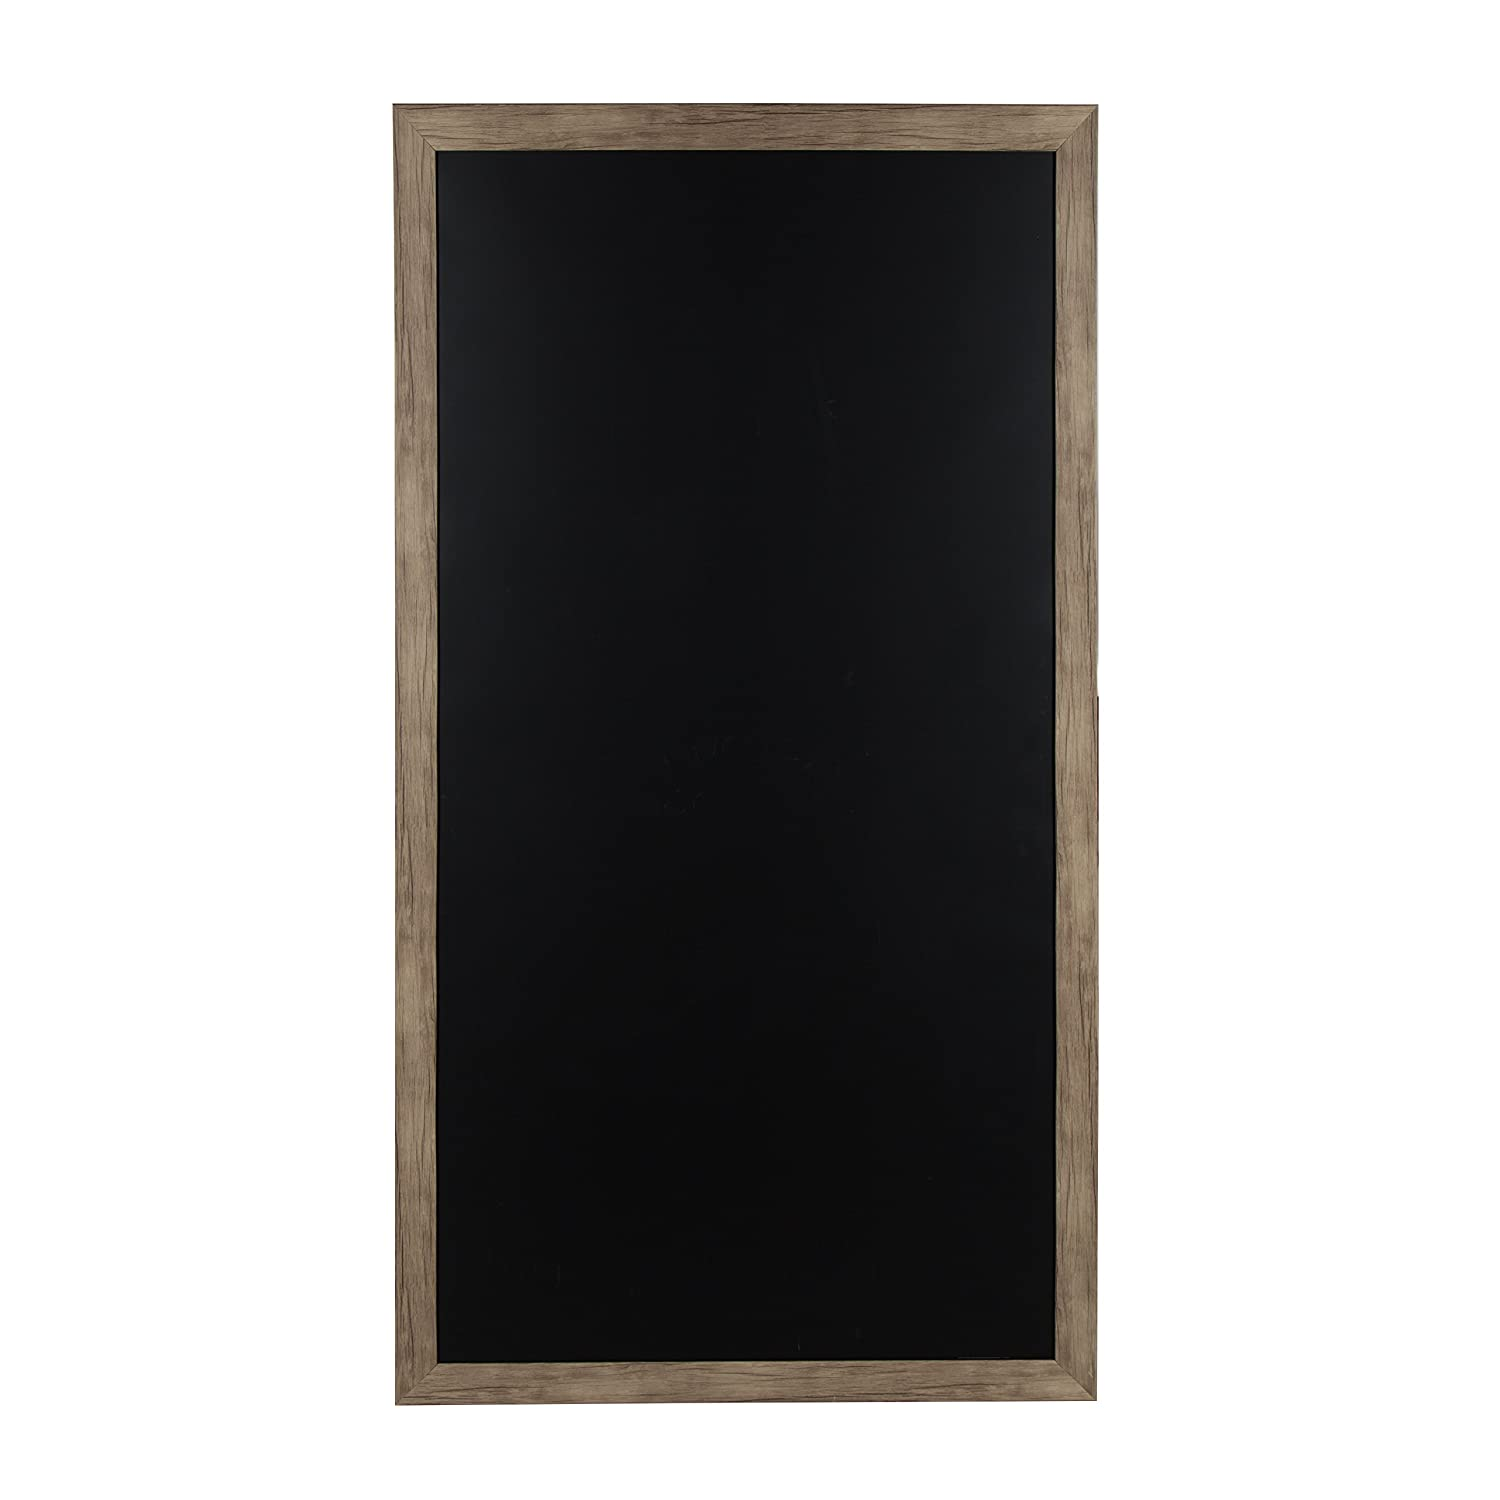 DesignOvation 209306 Beatrice Wall Mounted Oversized Framed Magnetic Chalkboard, Black Uniek